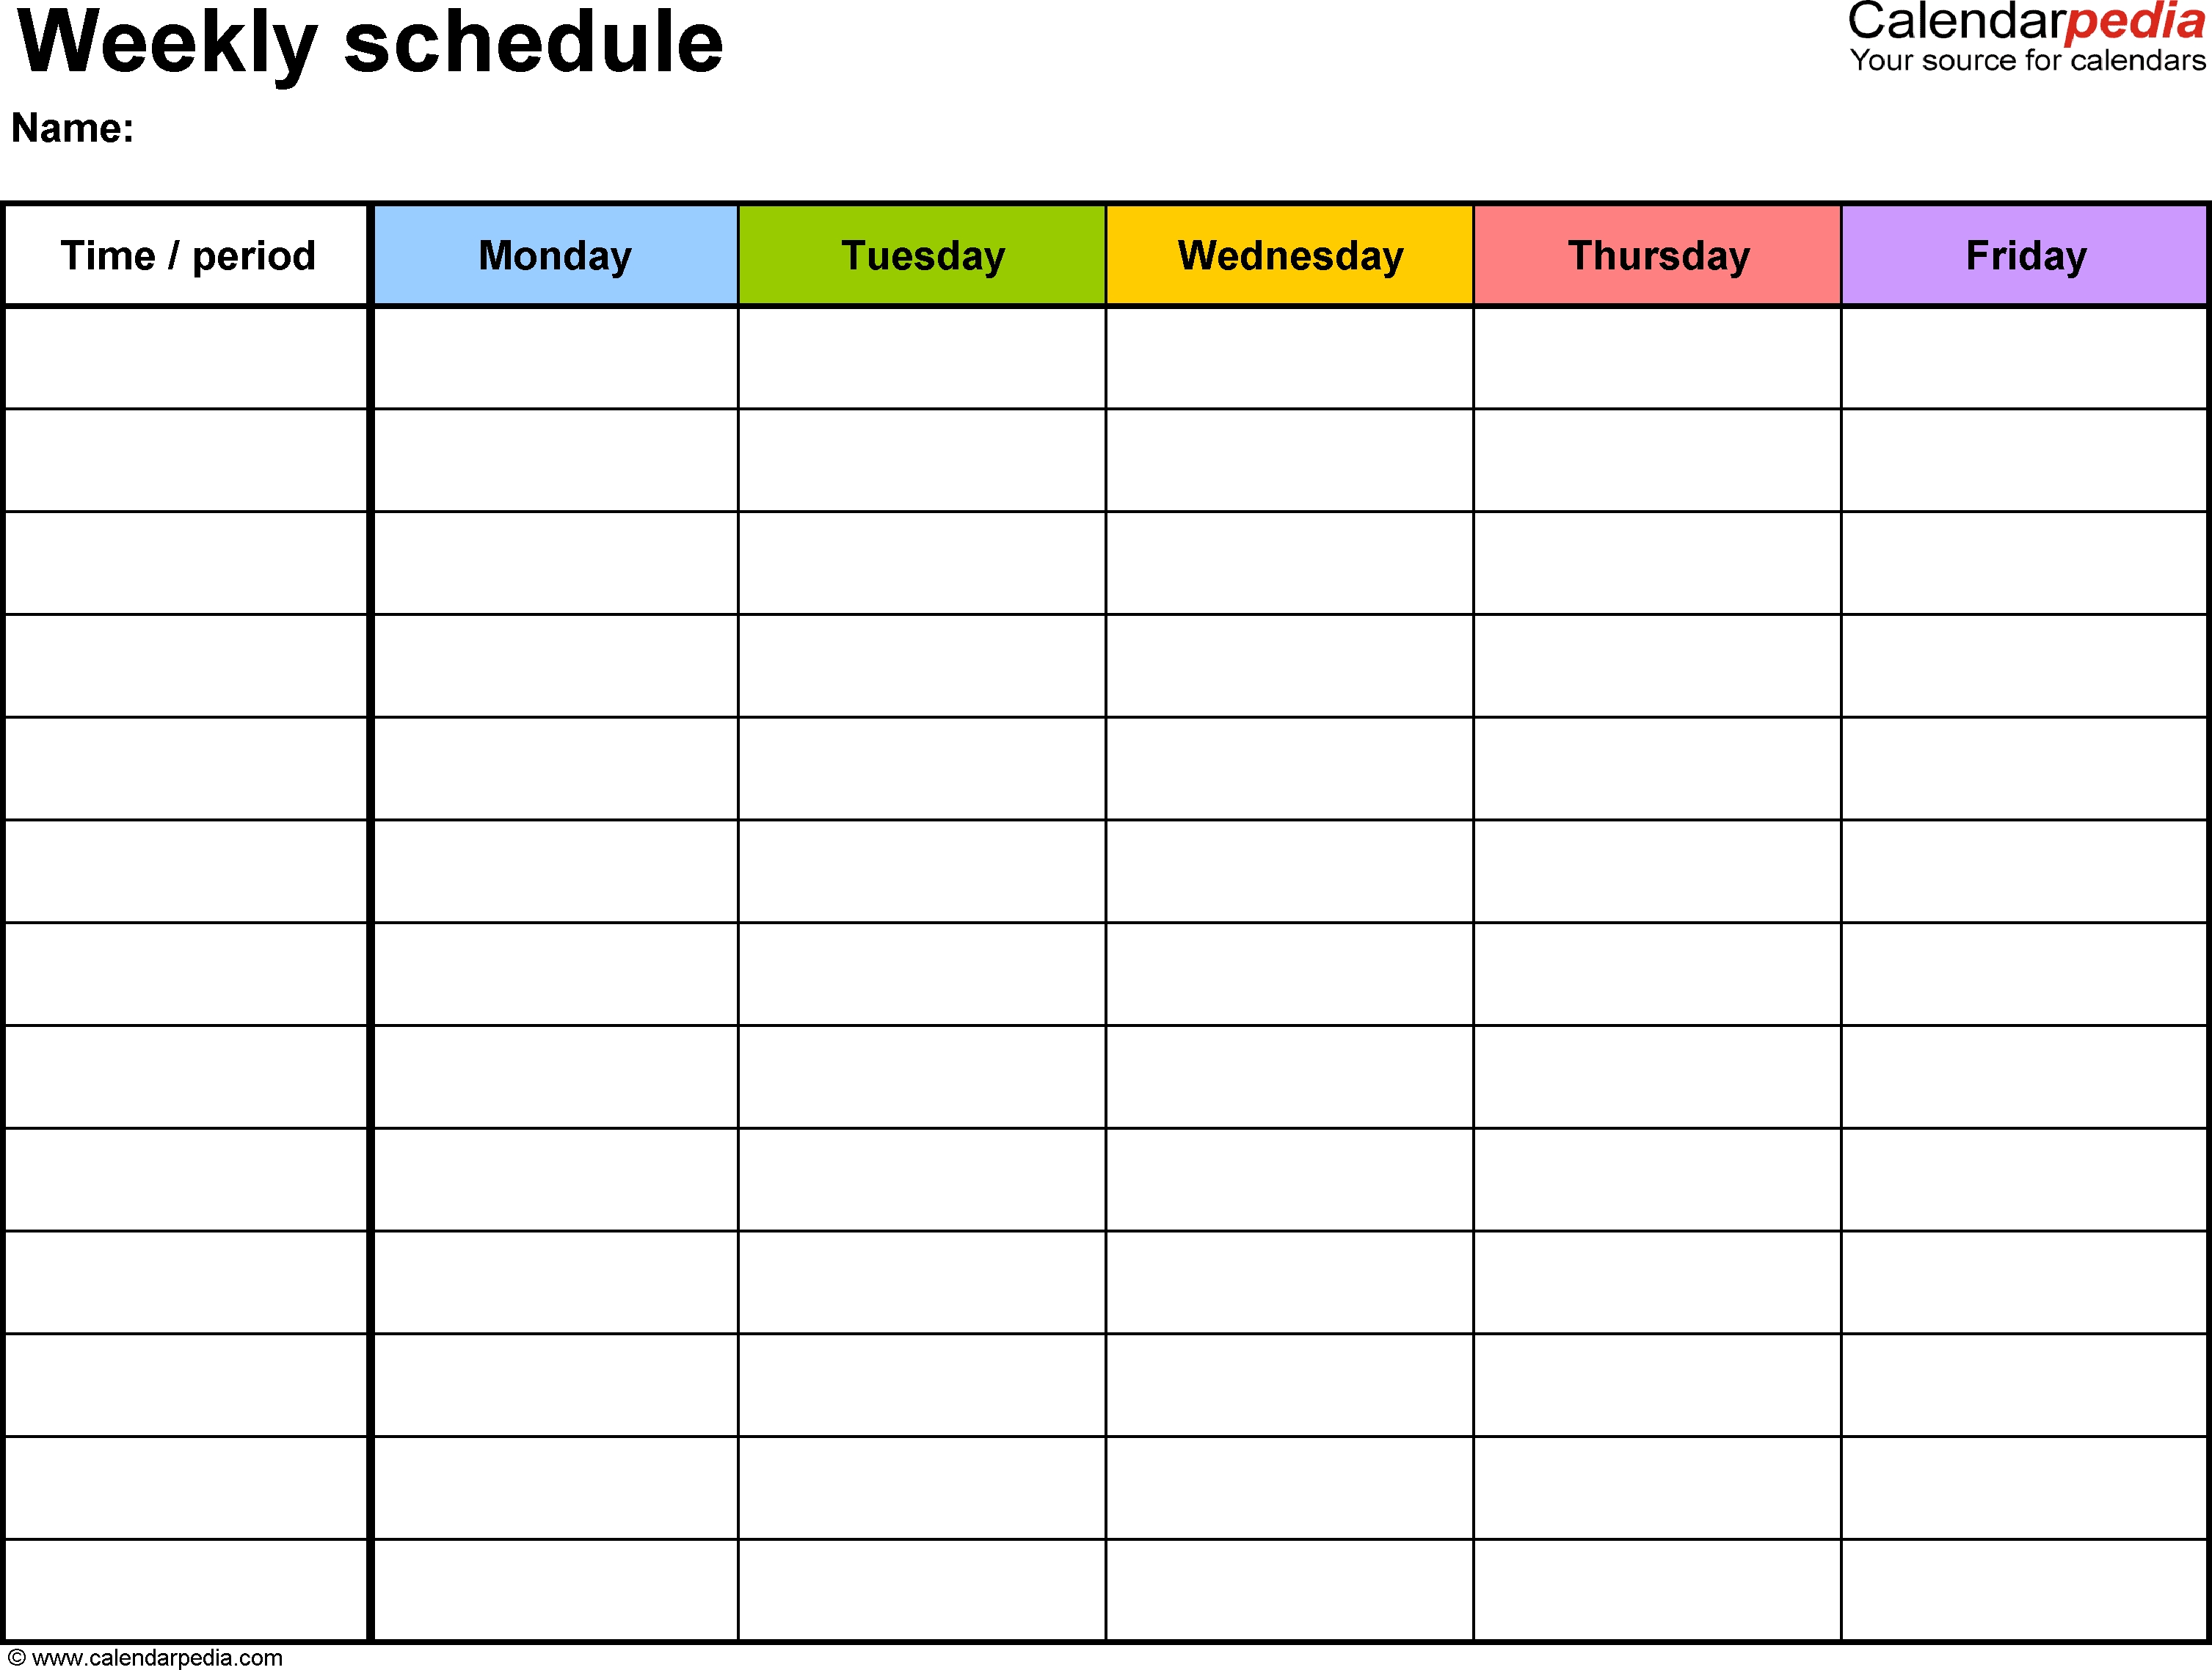 Free Weekly Schedule Templates For Pdf - 18 Templates with Weekly Planner Printable 5 Am Start